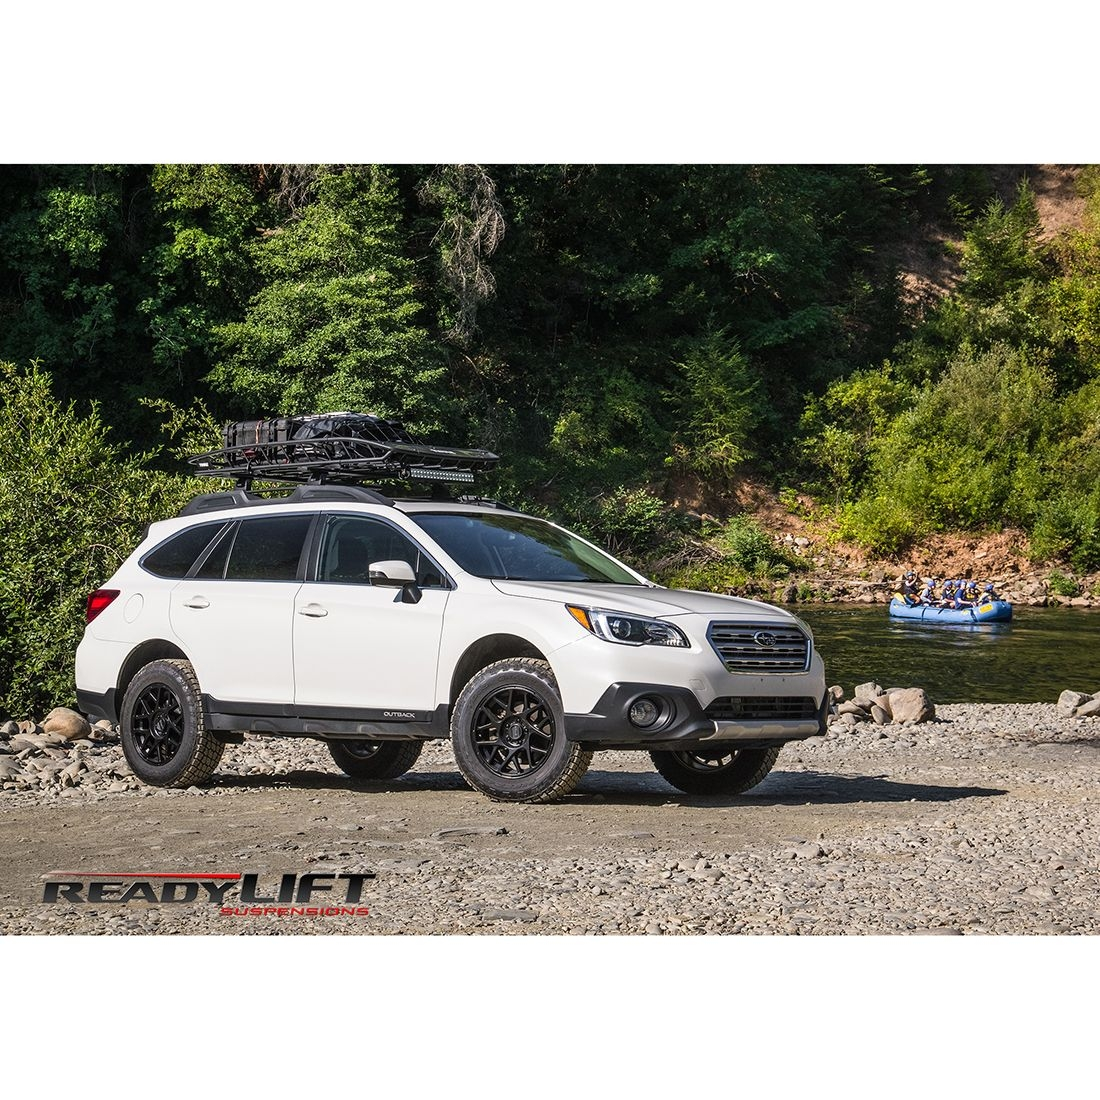 Subaru Outback Lift Kit >> Readylift 2 0 Sst Lift Kit